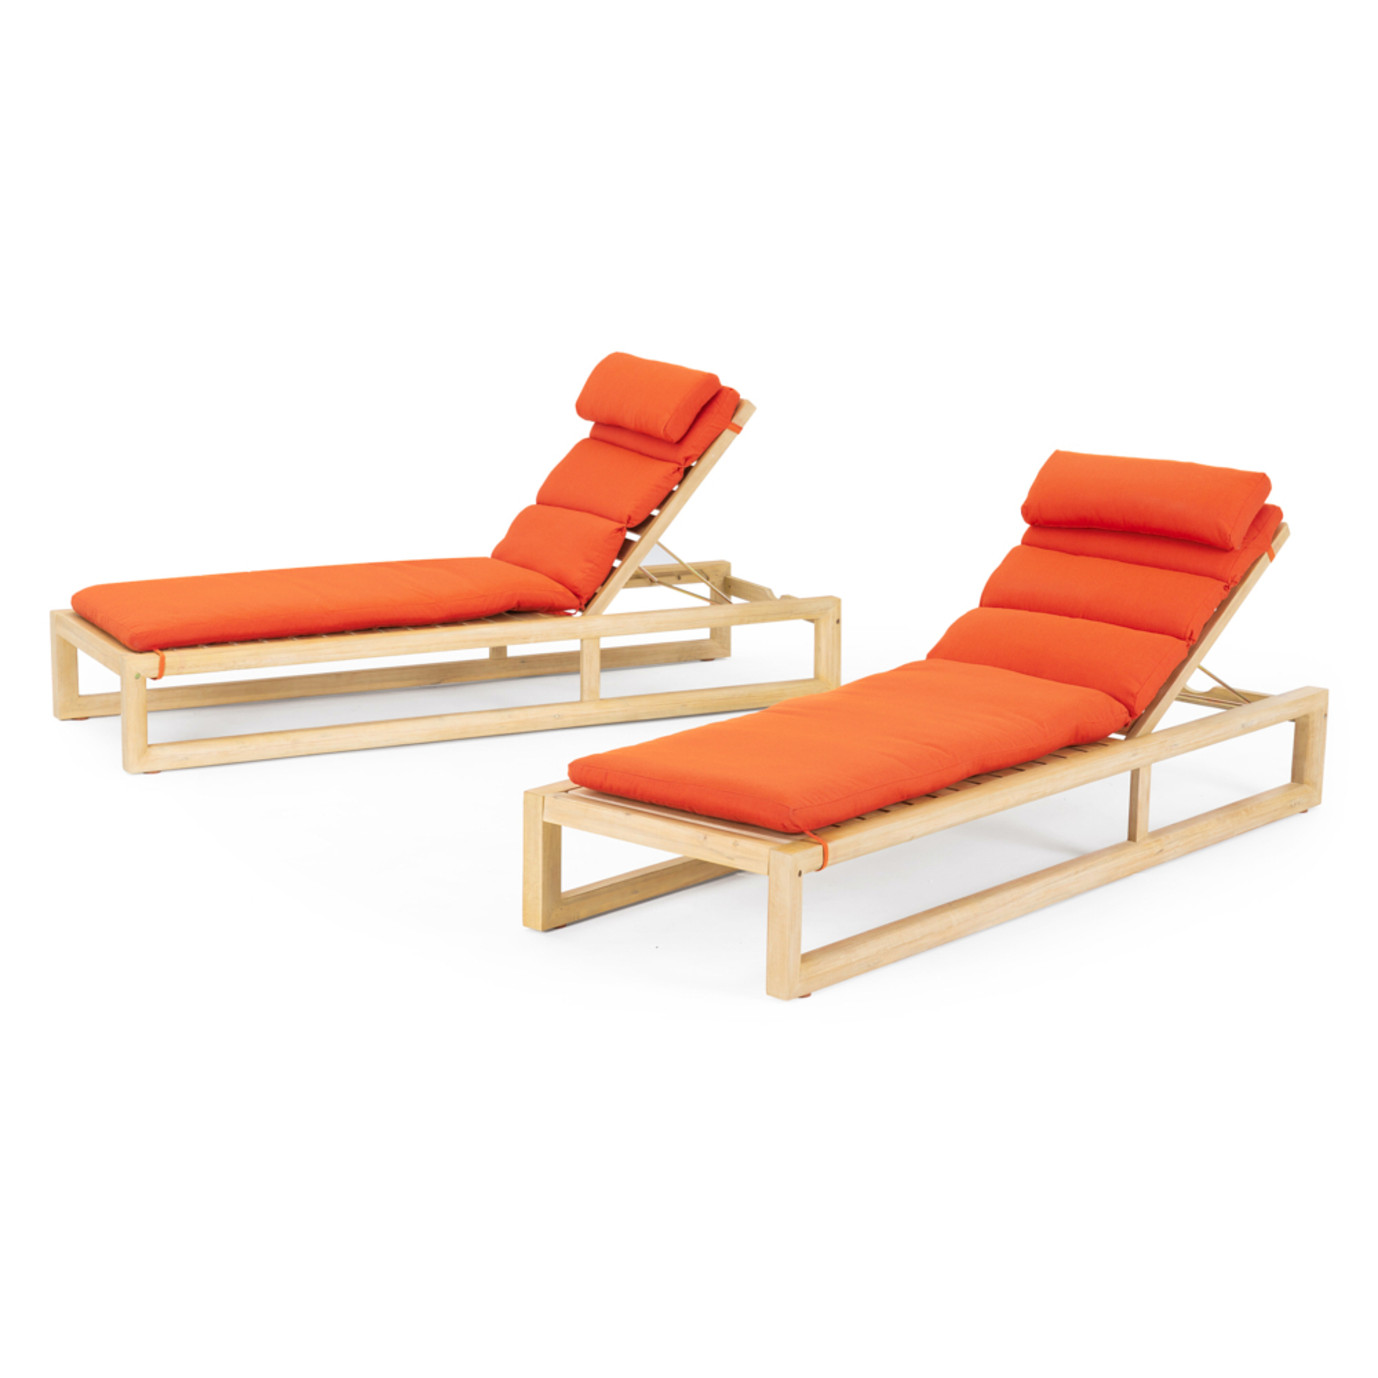 Benson™ Chaise Lounges - Tikka Orange